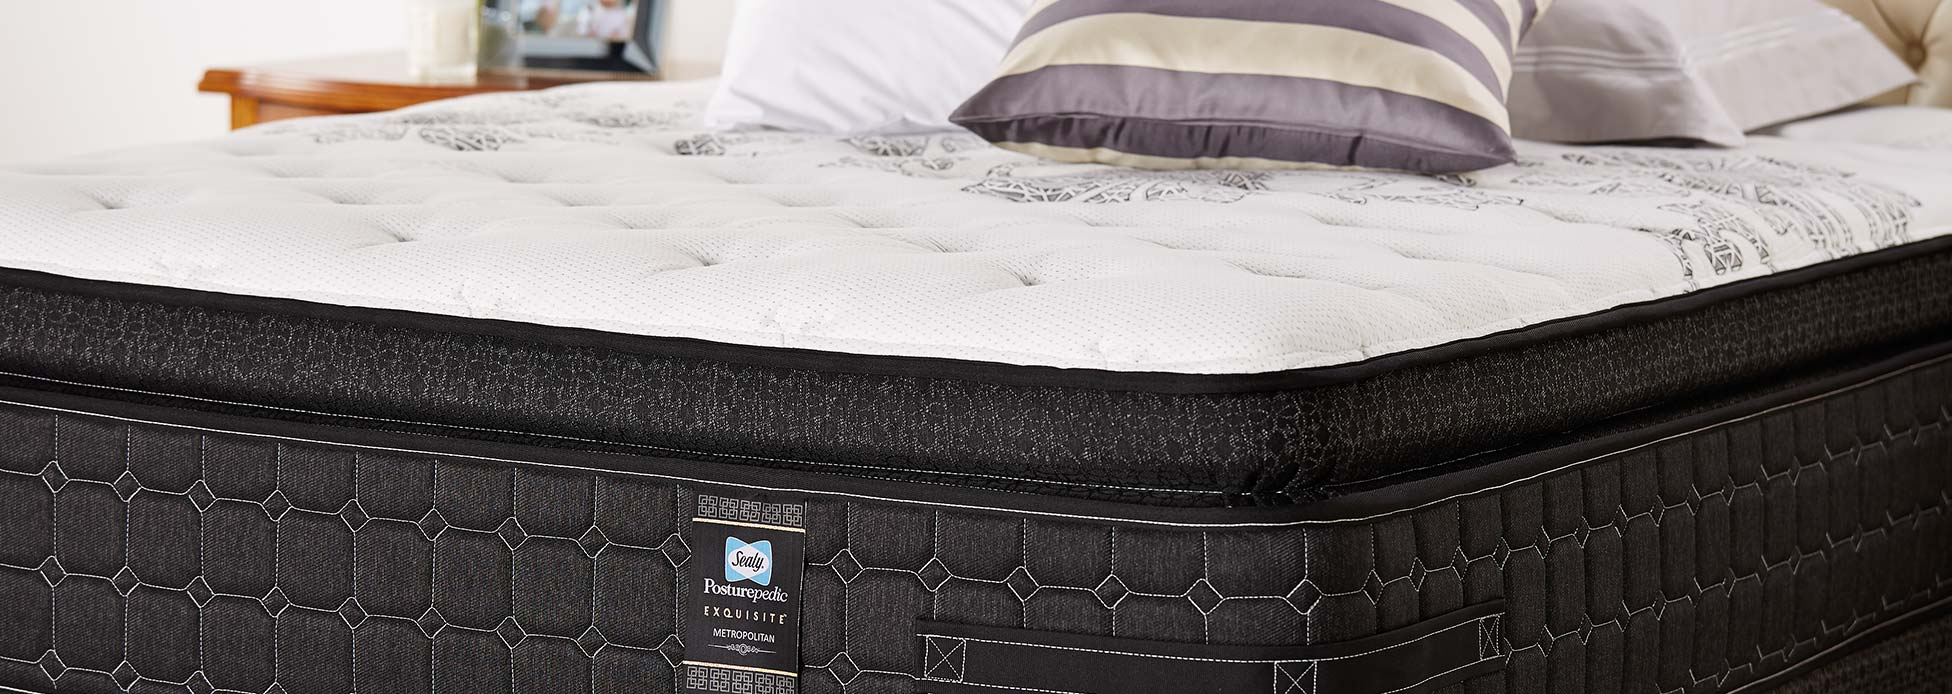 in the range - Sealy Mattress